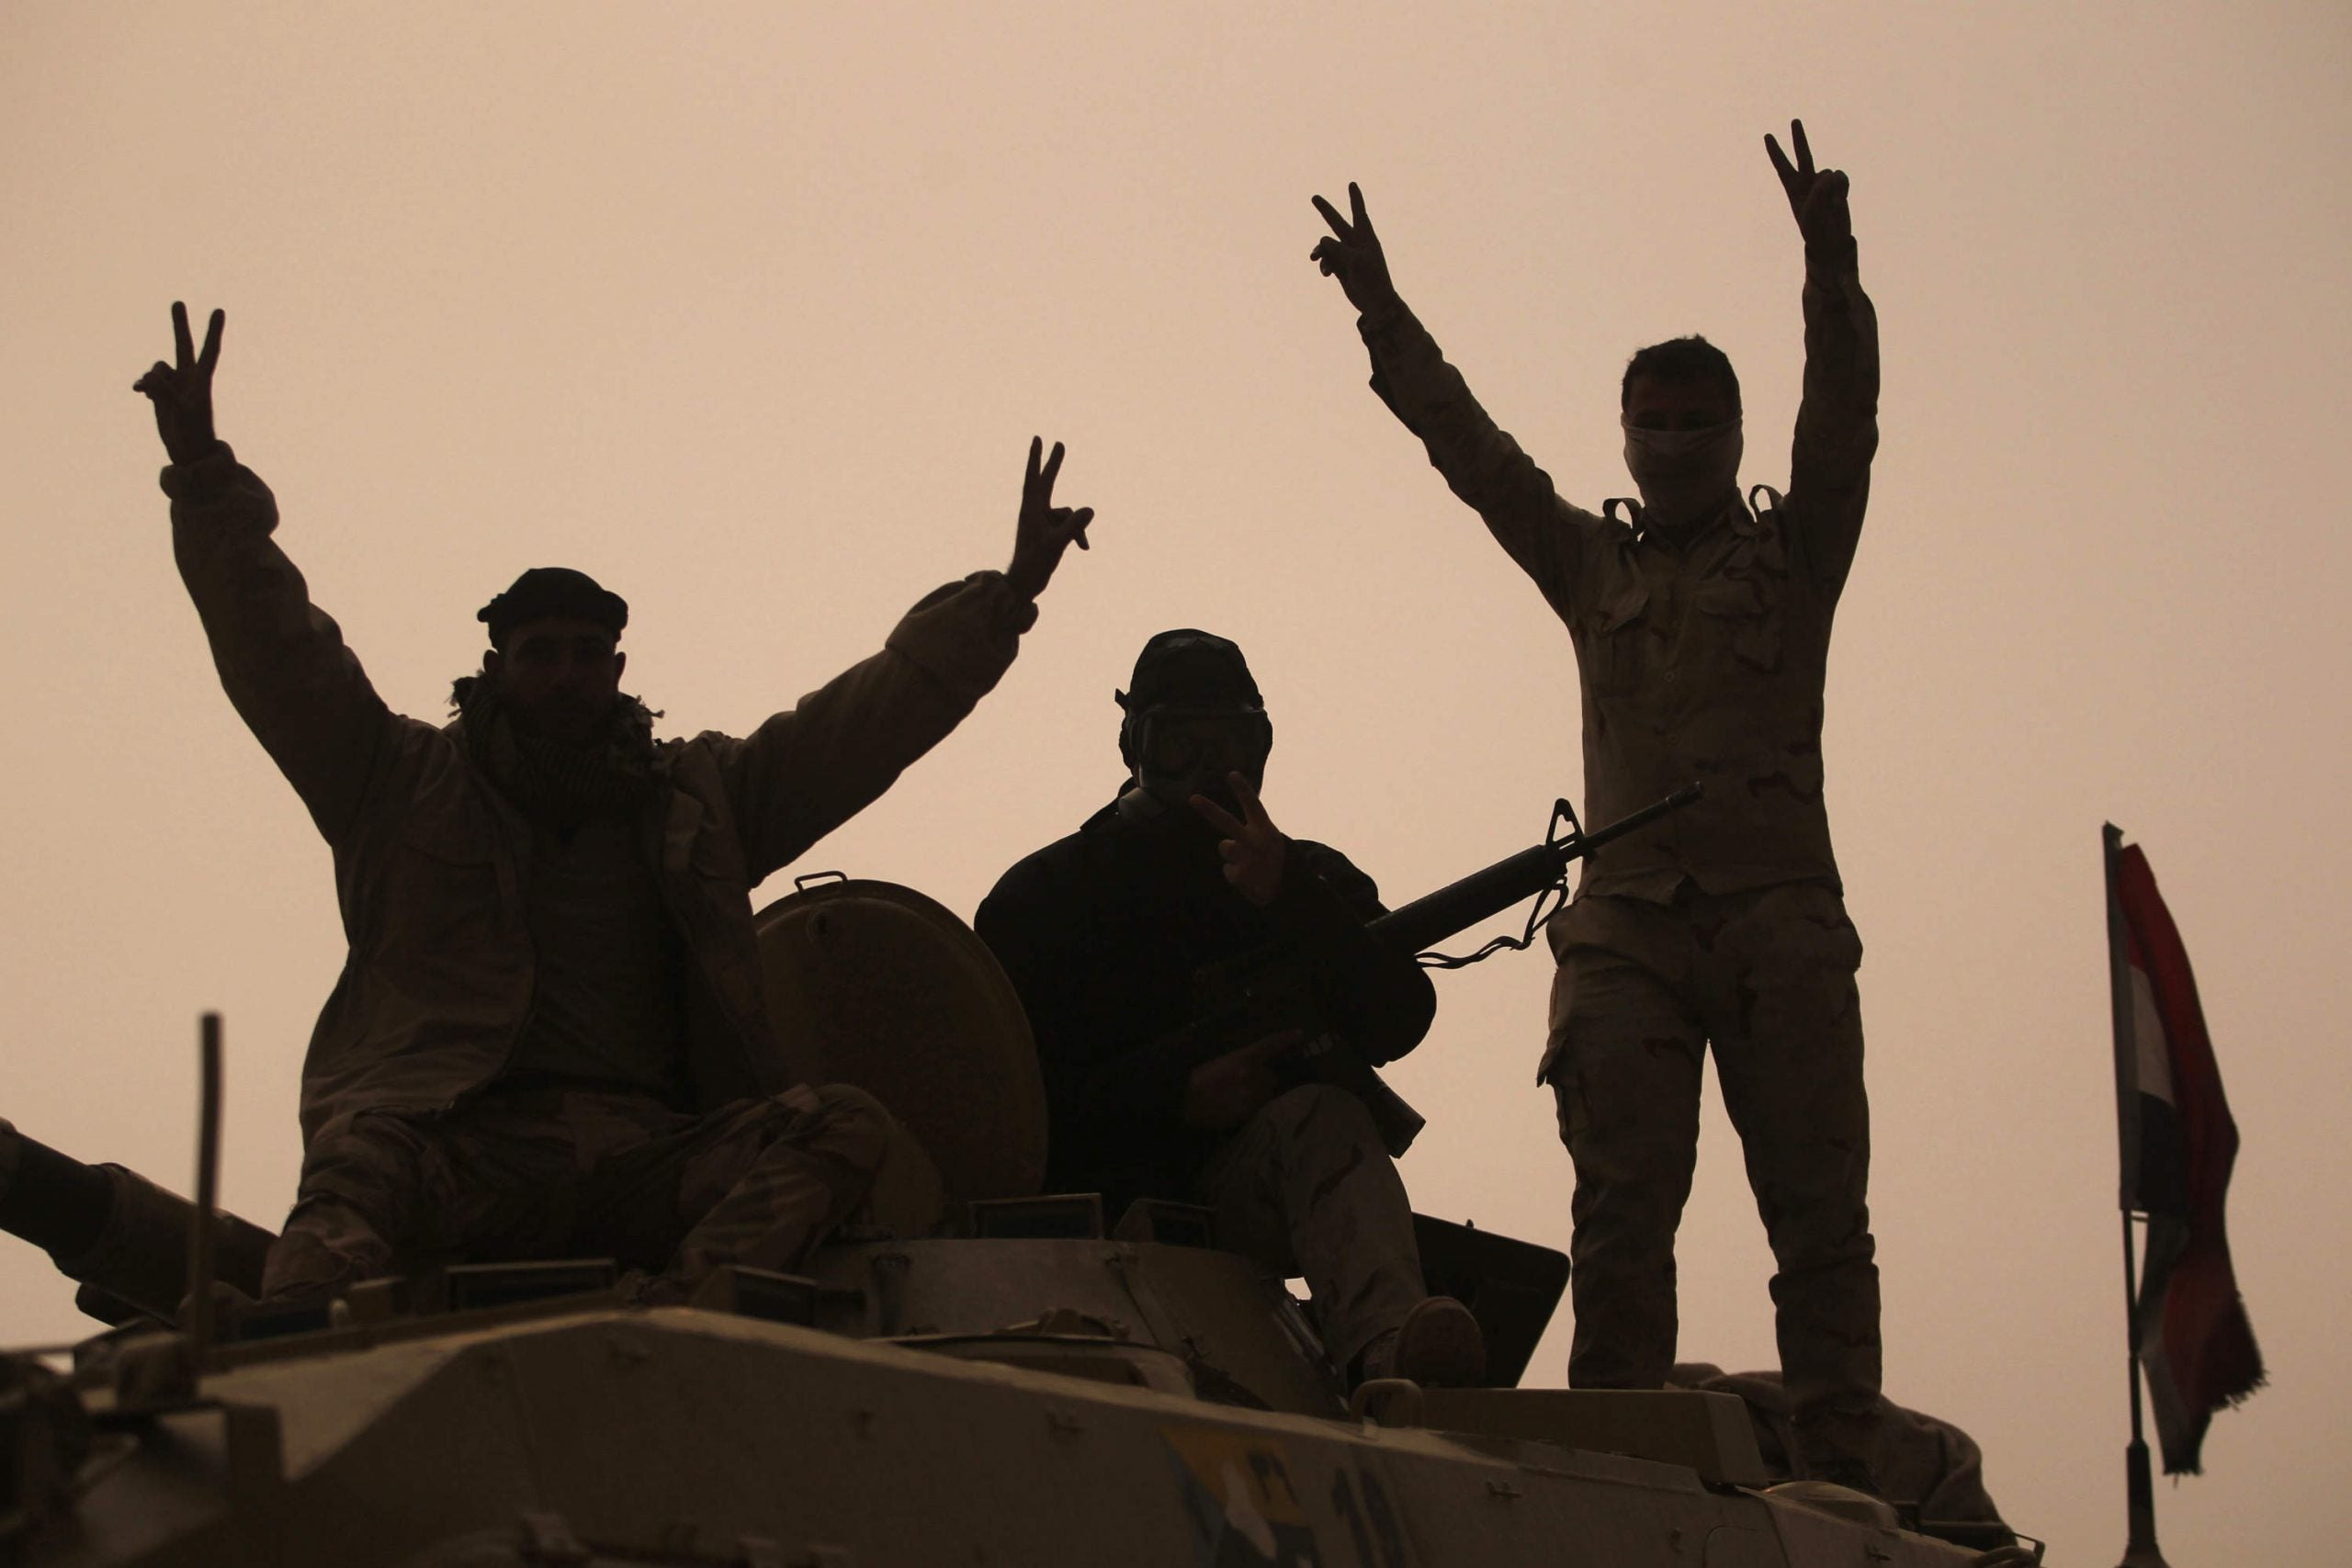 On the road with the Iraqi army in Mosul